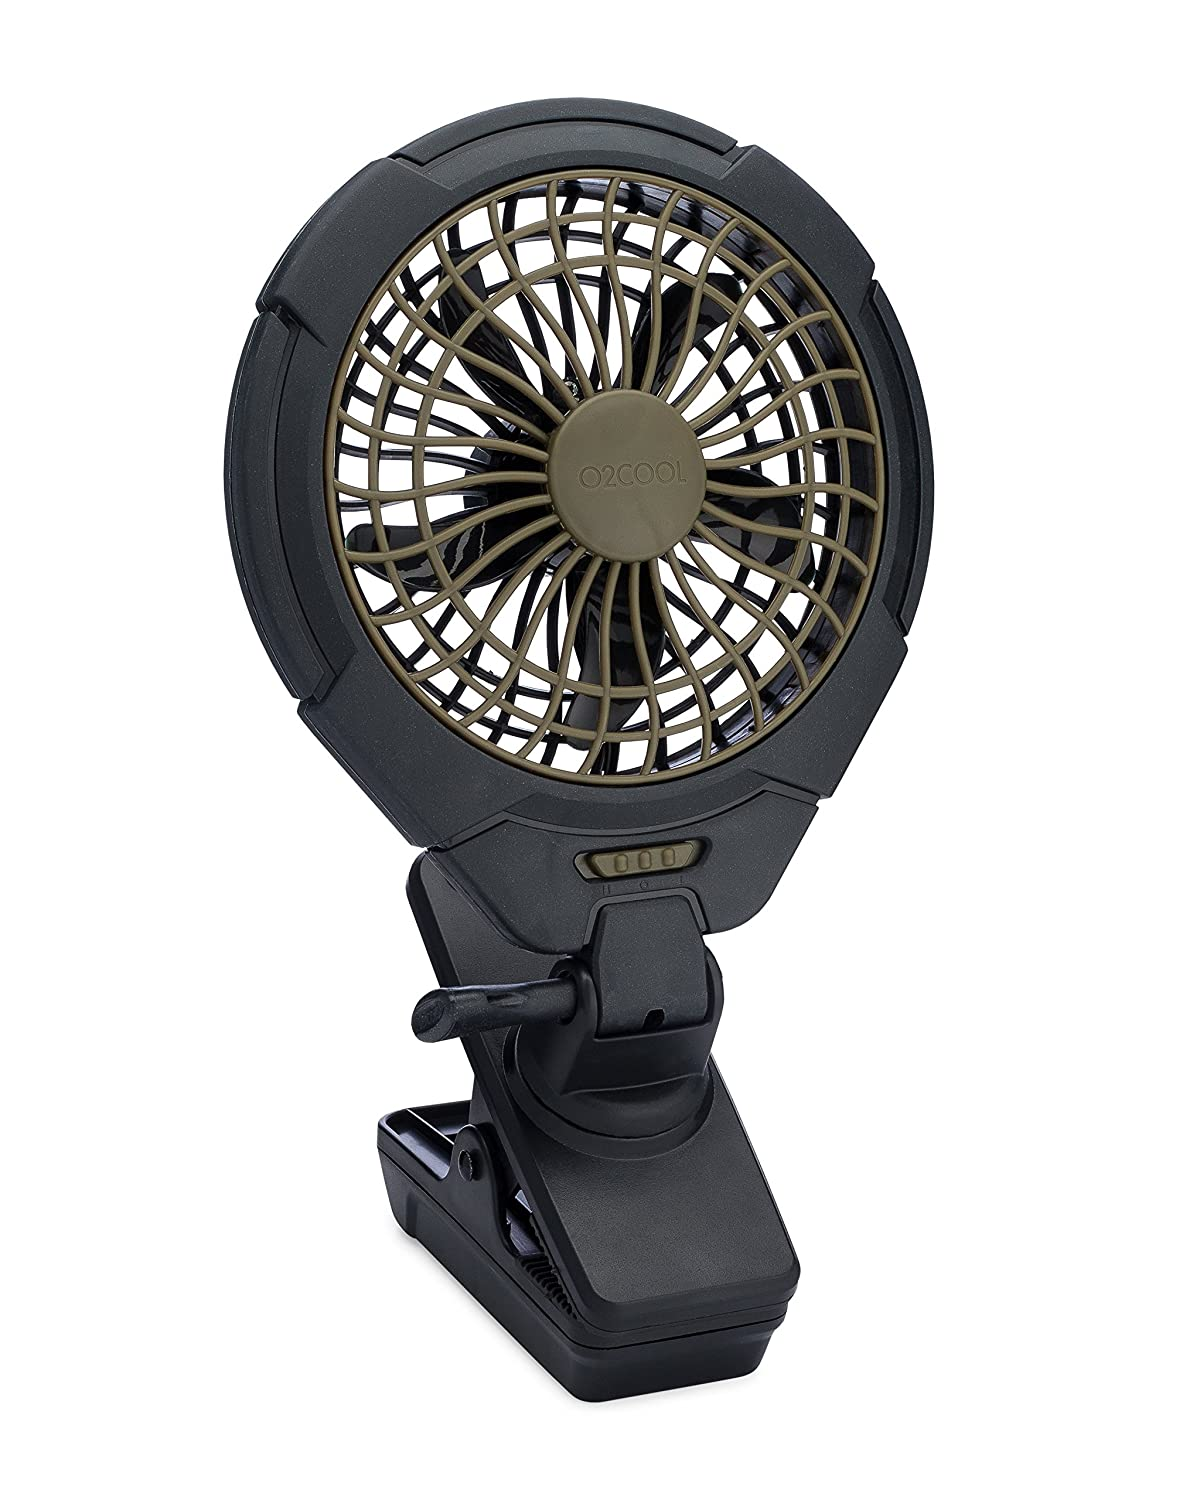 """O2COOL 5"""" Battery Operated Clip Fan - Adjustable, Rotating, Tilt & Swivel Feature Portable Fan 